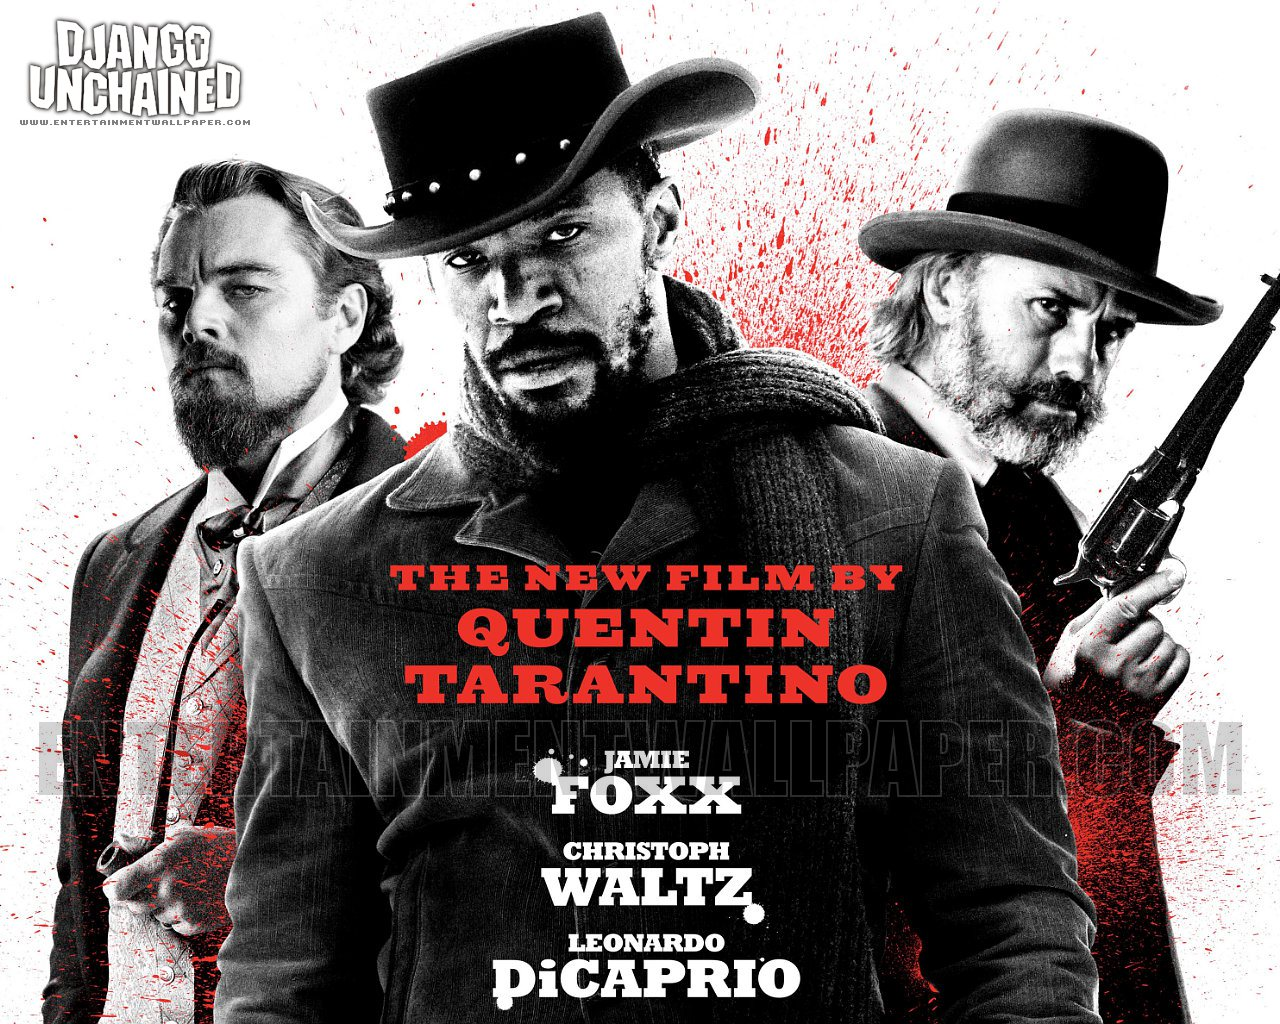 Django Unchained Movie Artwork